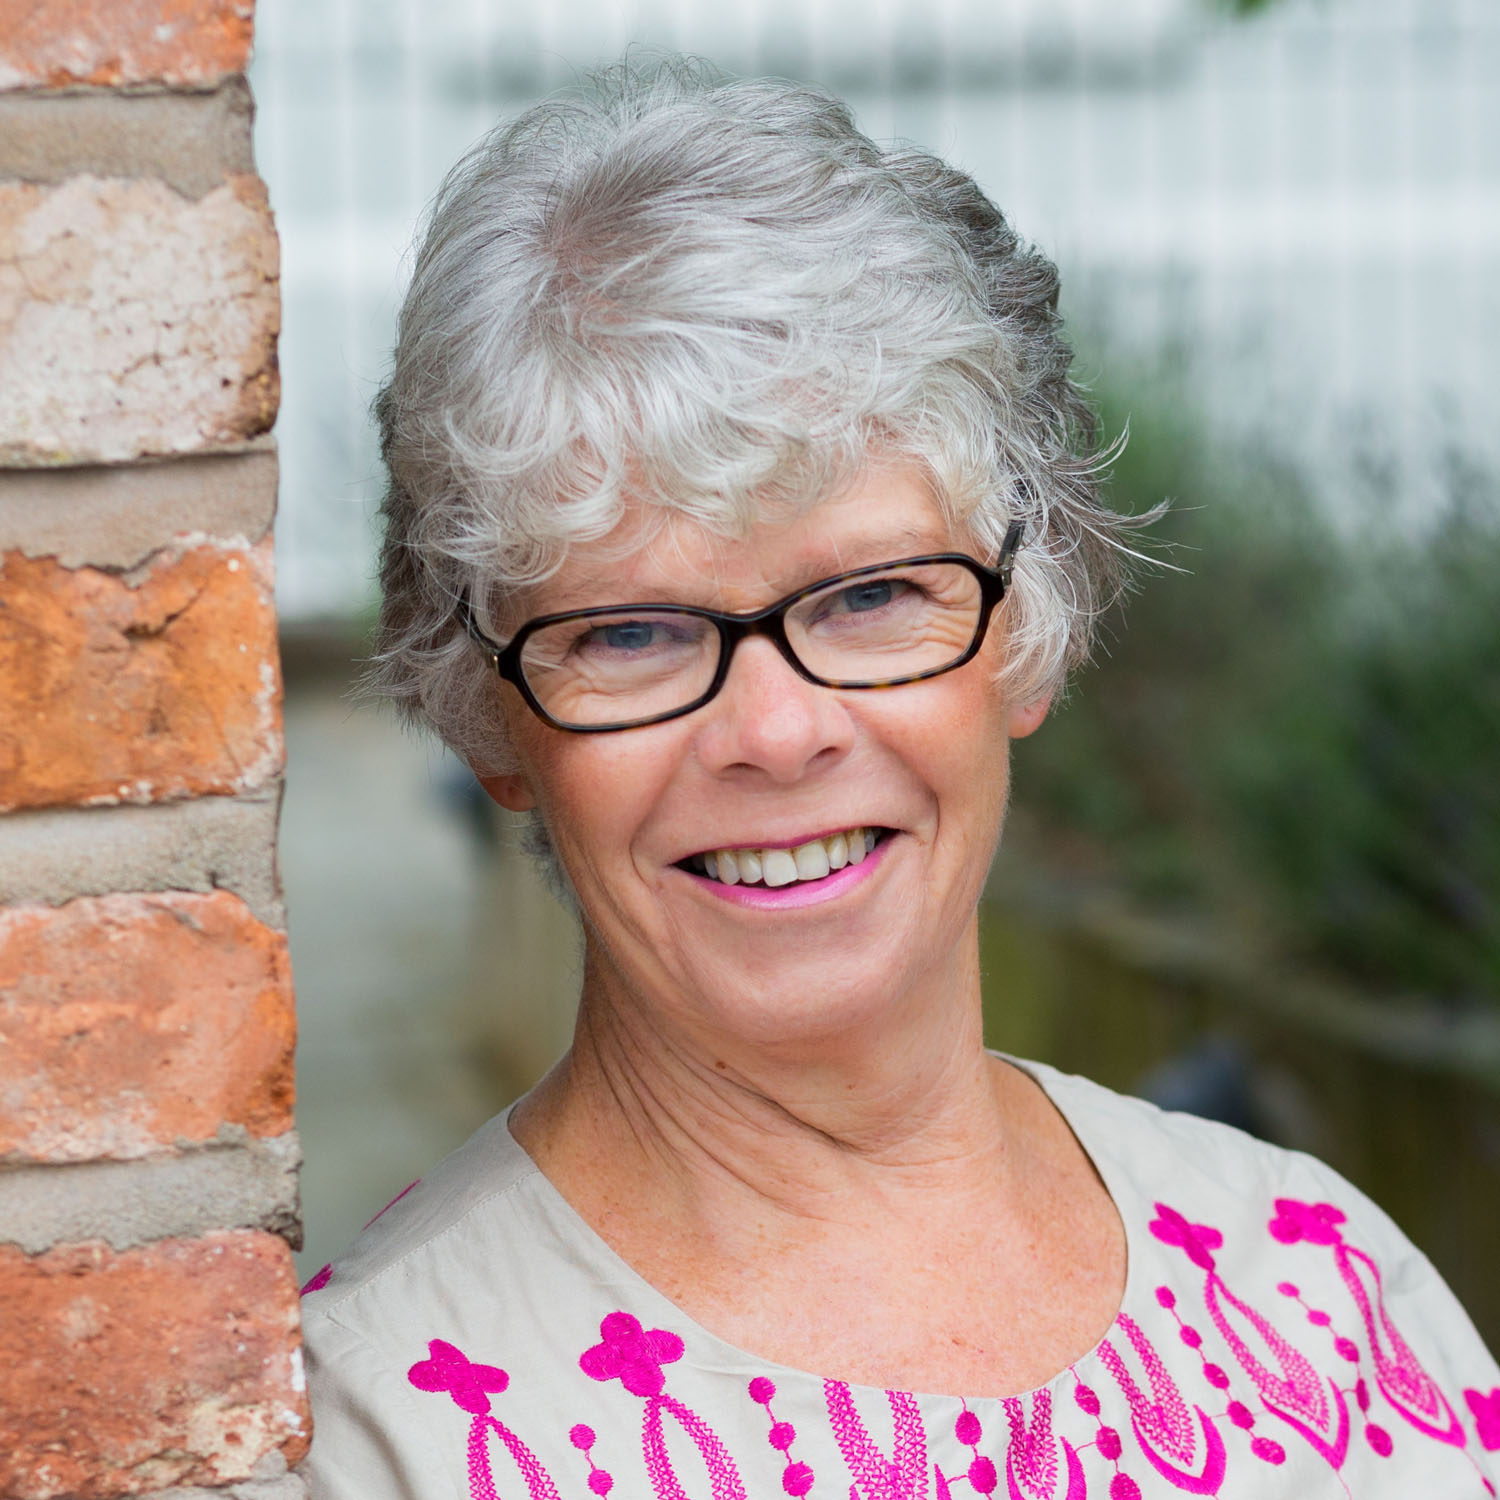 Natural background headshot of Arbonne consultant leaning on brick wall in Cheshire